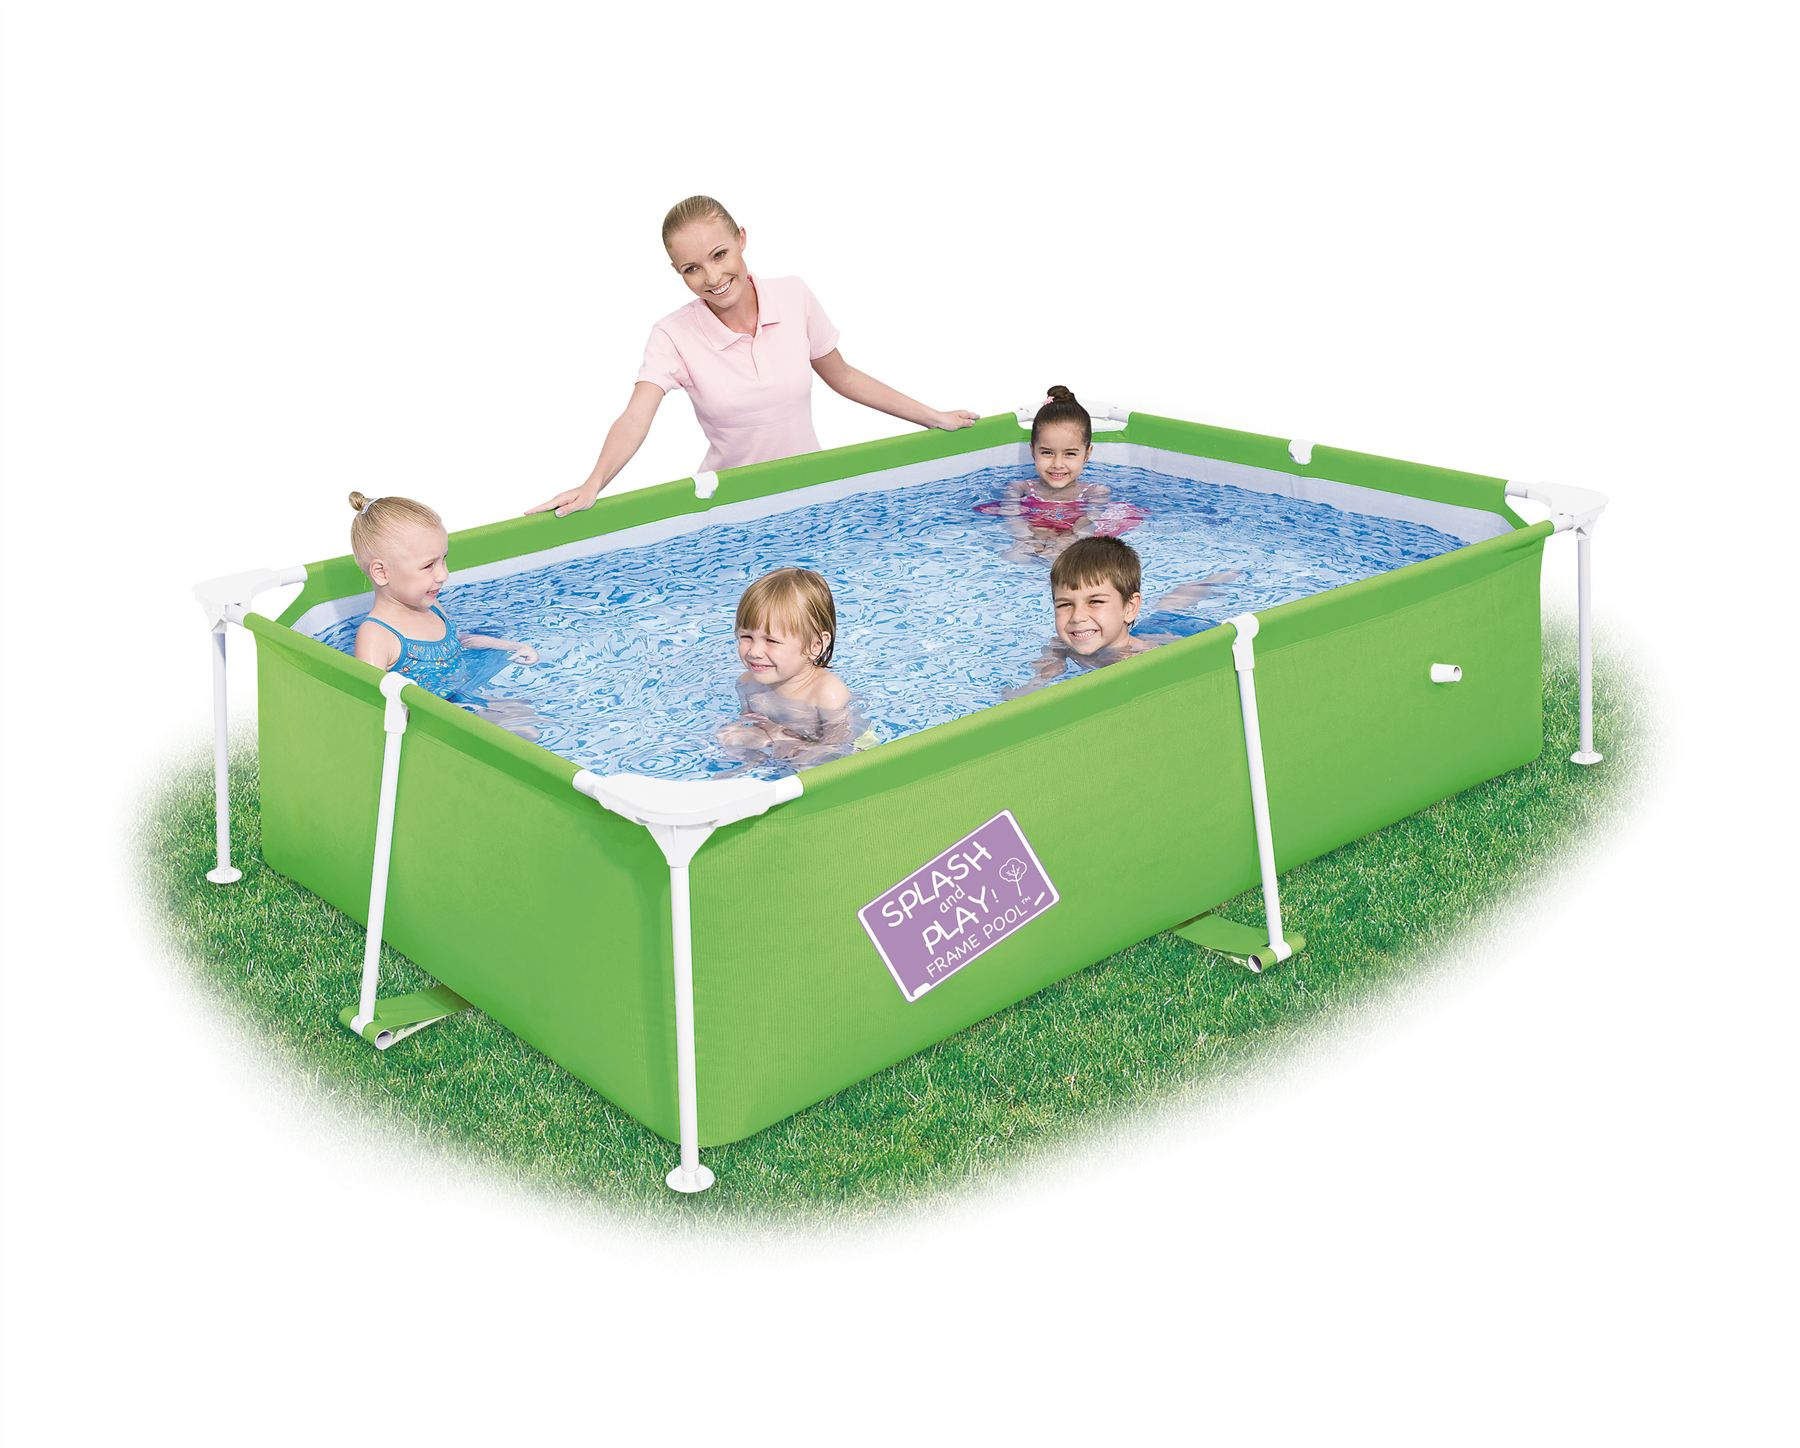 Bestway my first frame orange swimming pool family garden for Garden pools uk